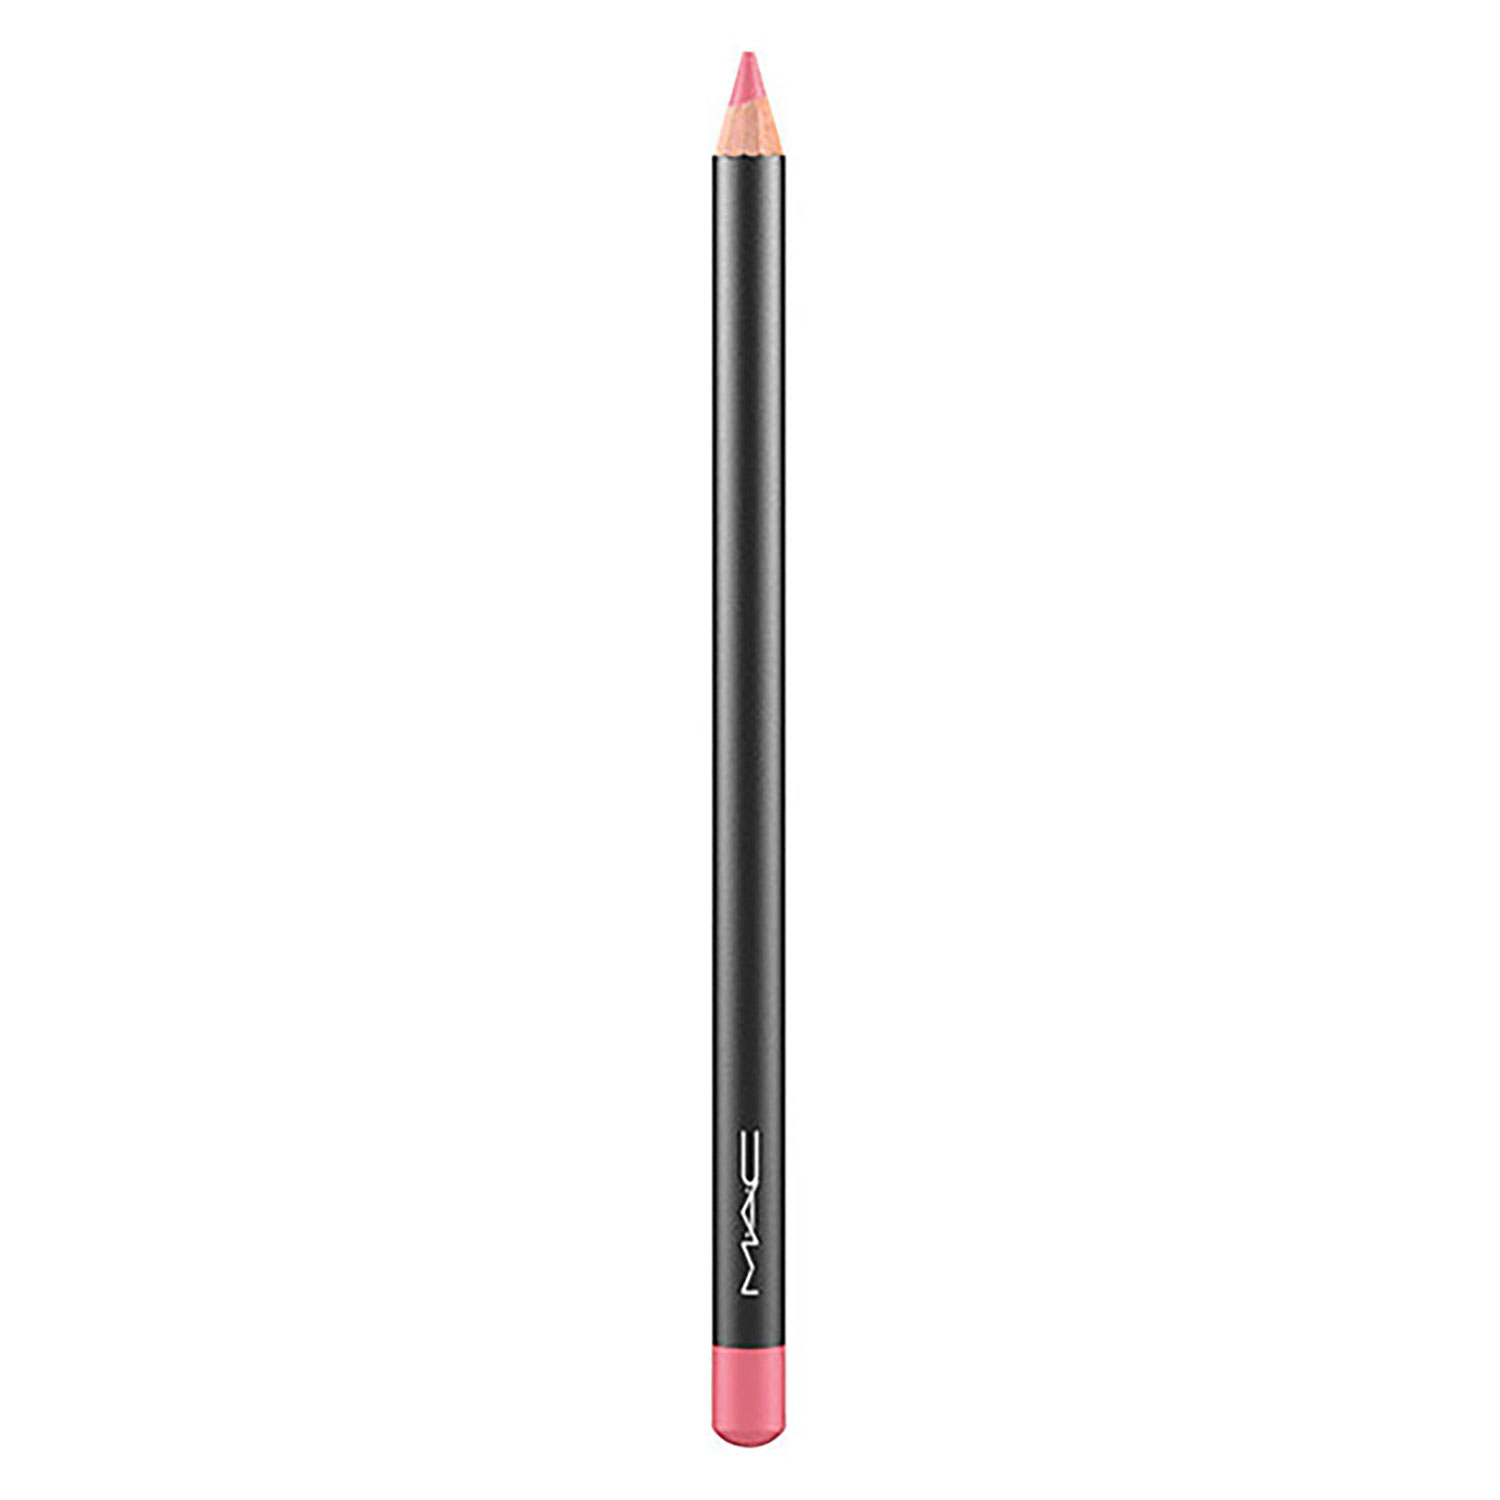 Lip Pencil - Rosy Rim - 1.4g